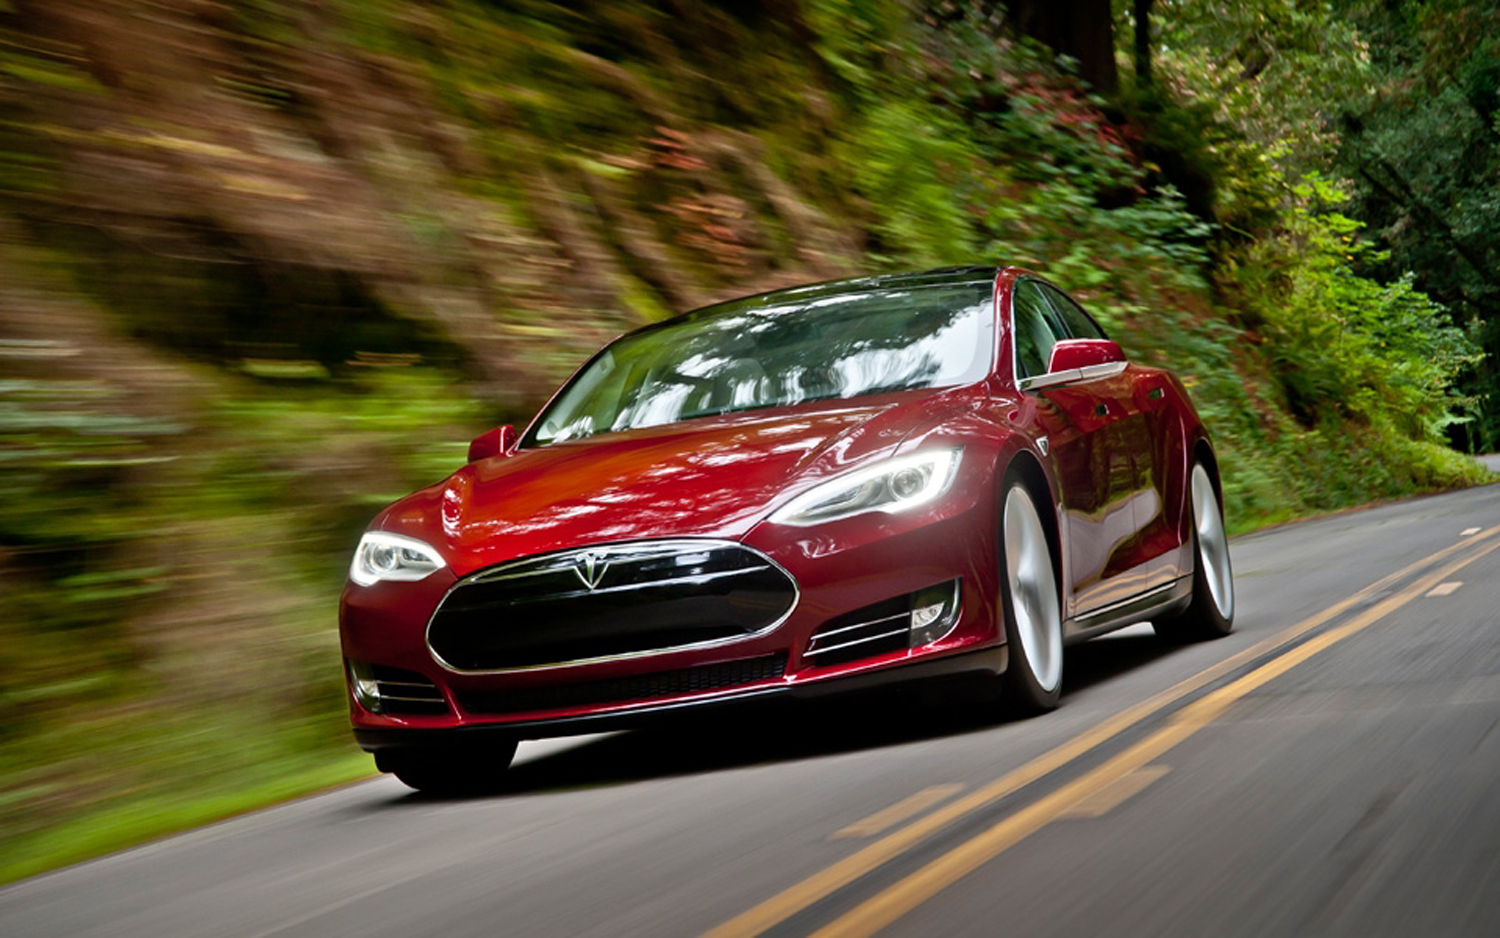 Tesla Woes: Accident at HQ, Model S Recall up to NHTSA, Not Musk